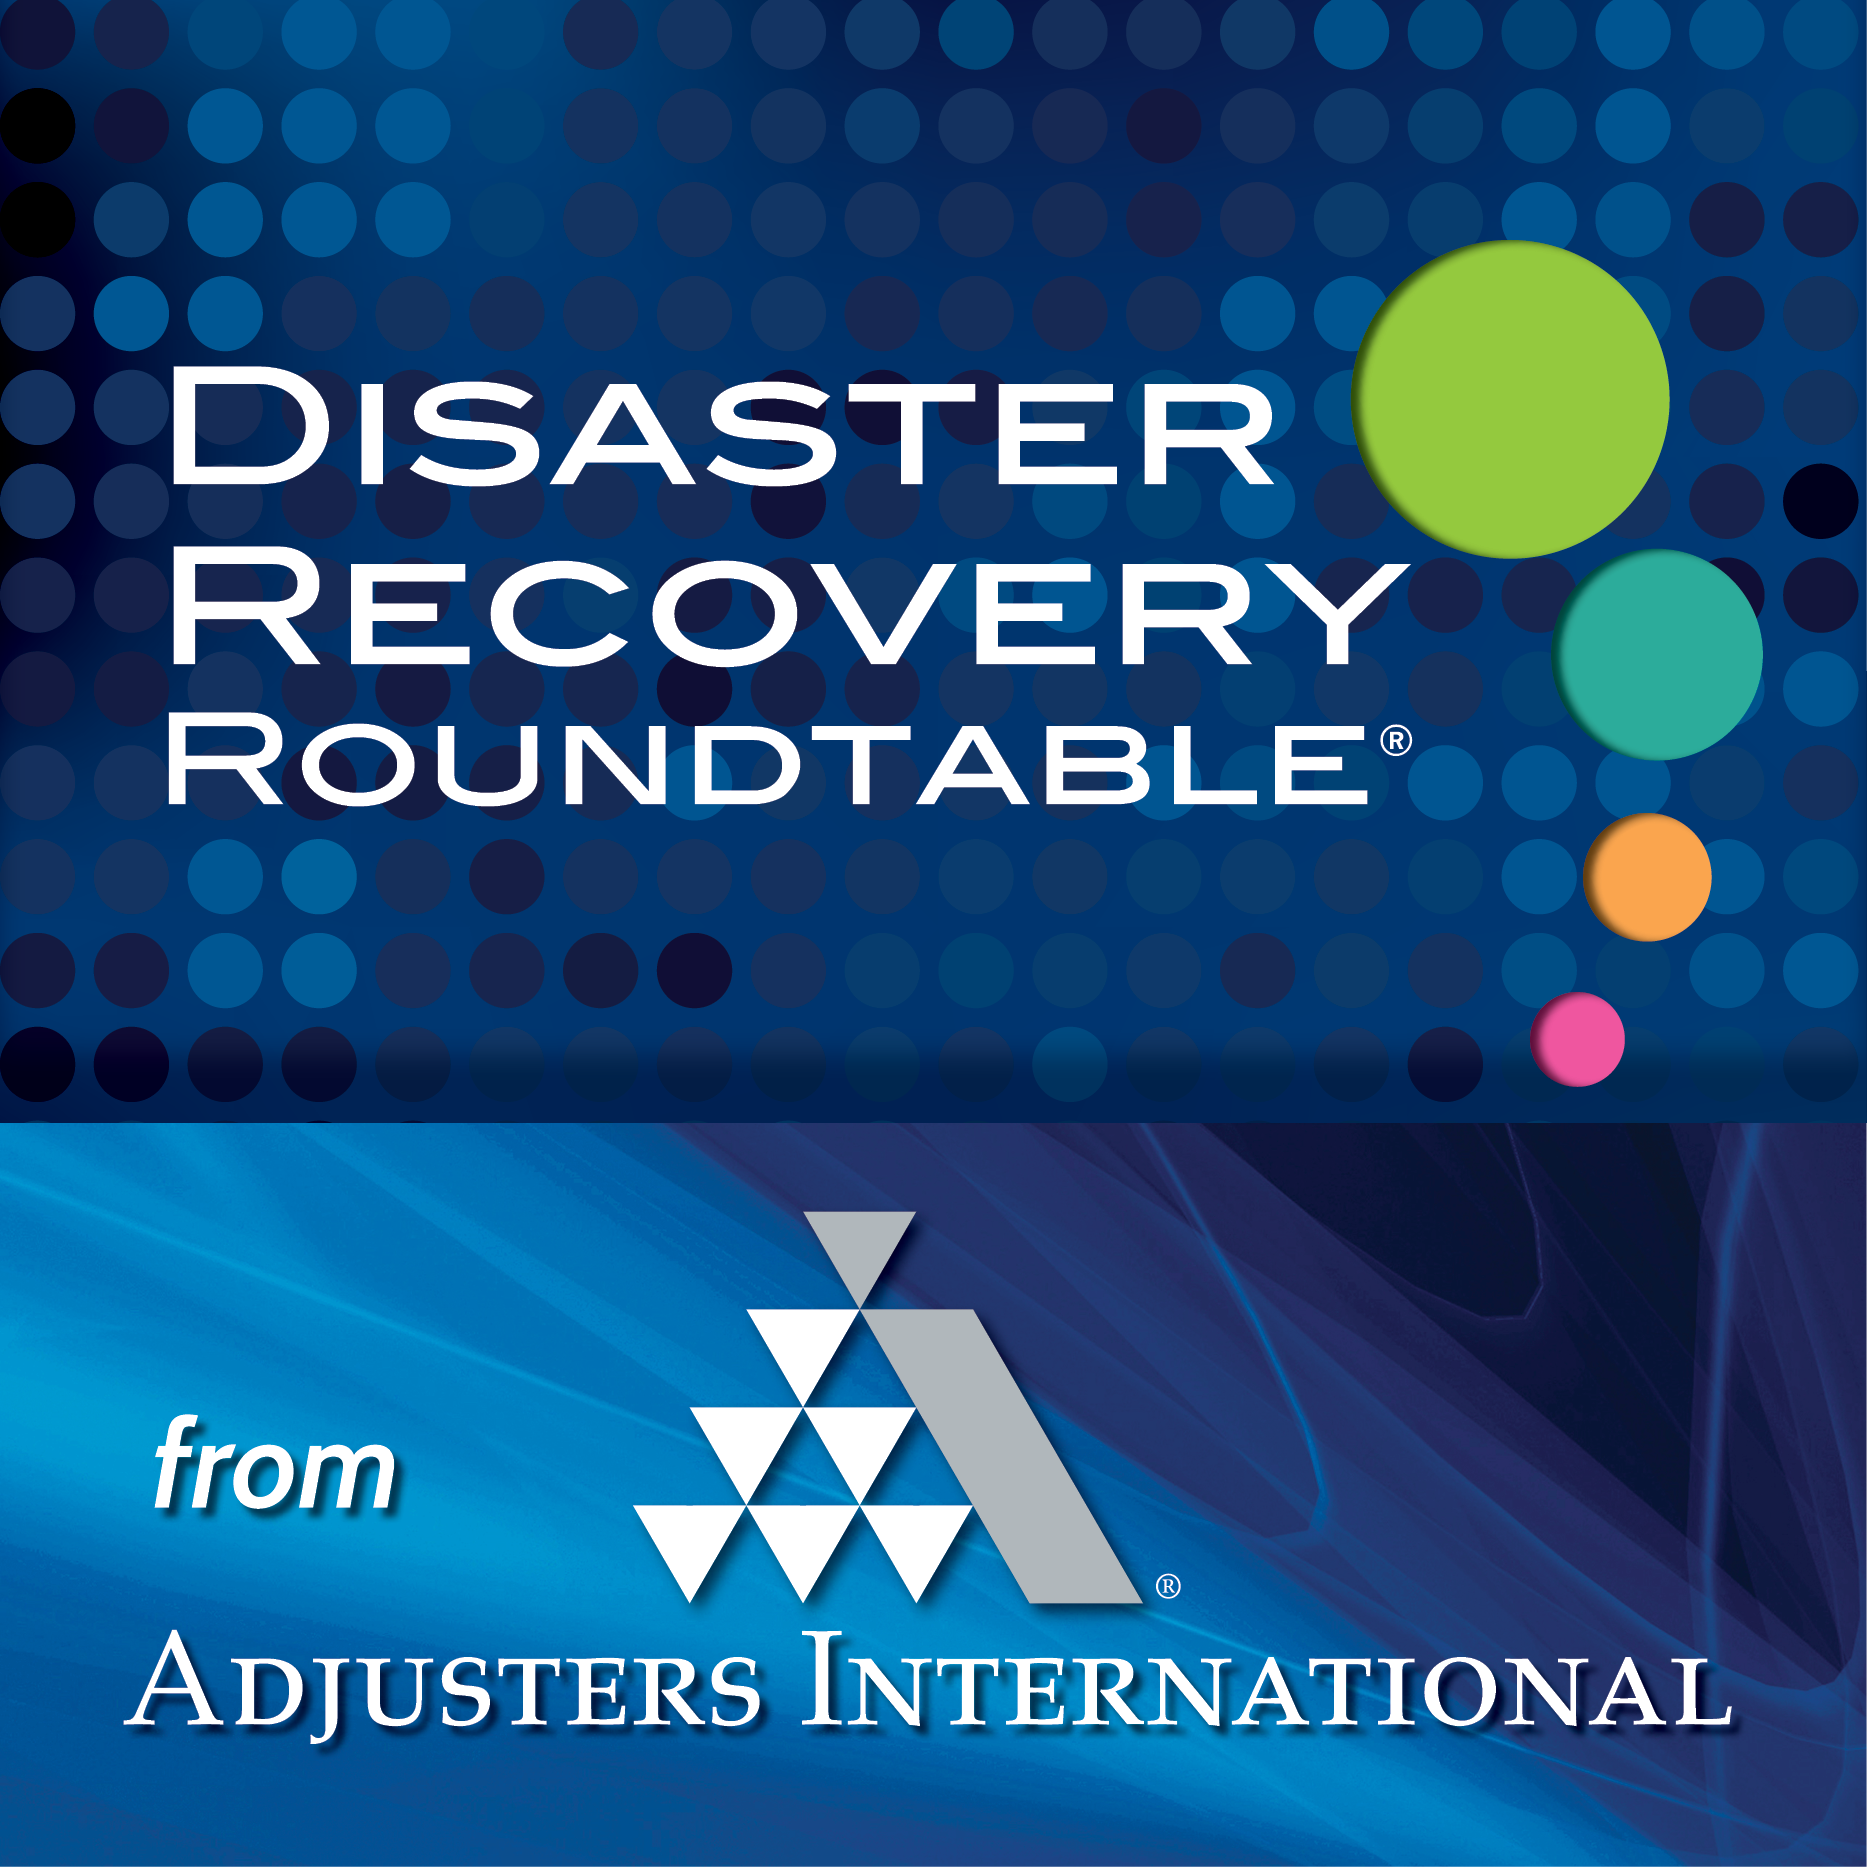 Disaster Recovery Roundtable Podcast Adjusters International